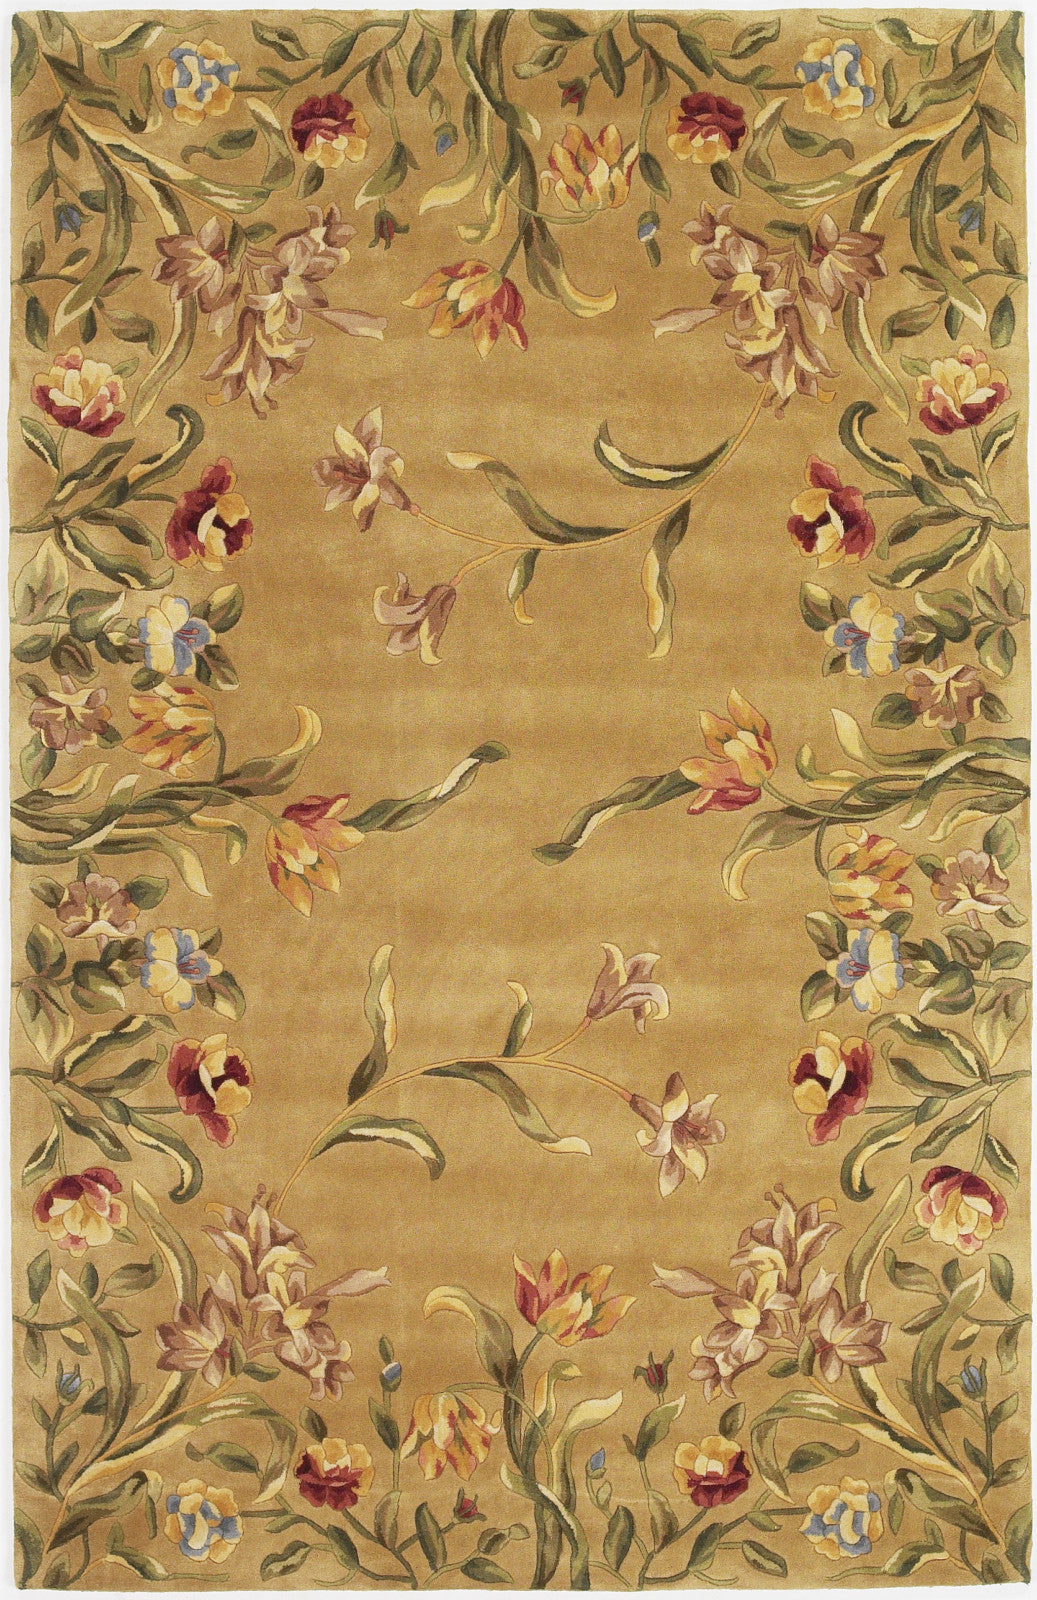 KAS Emerald 9080 Gold Tulip Garden Hand Tufted Area Rug